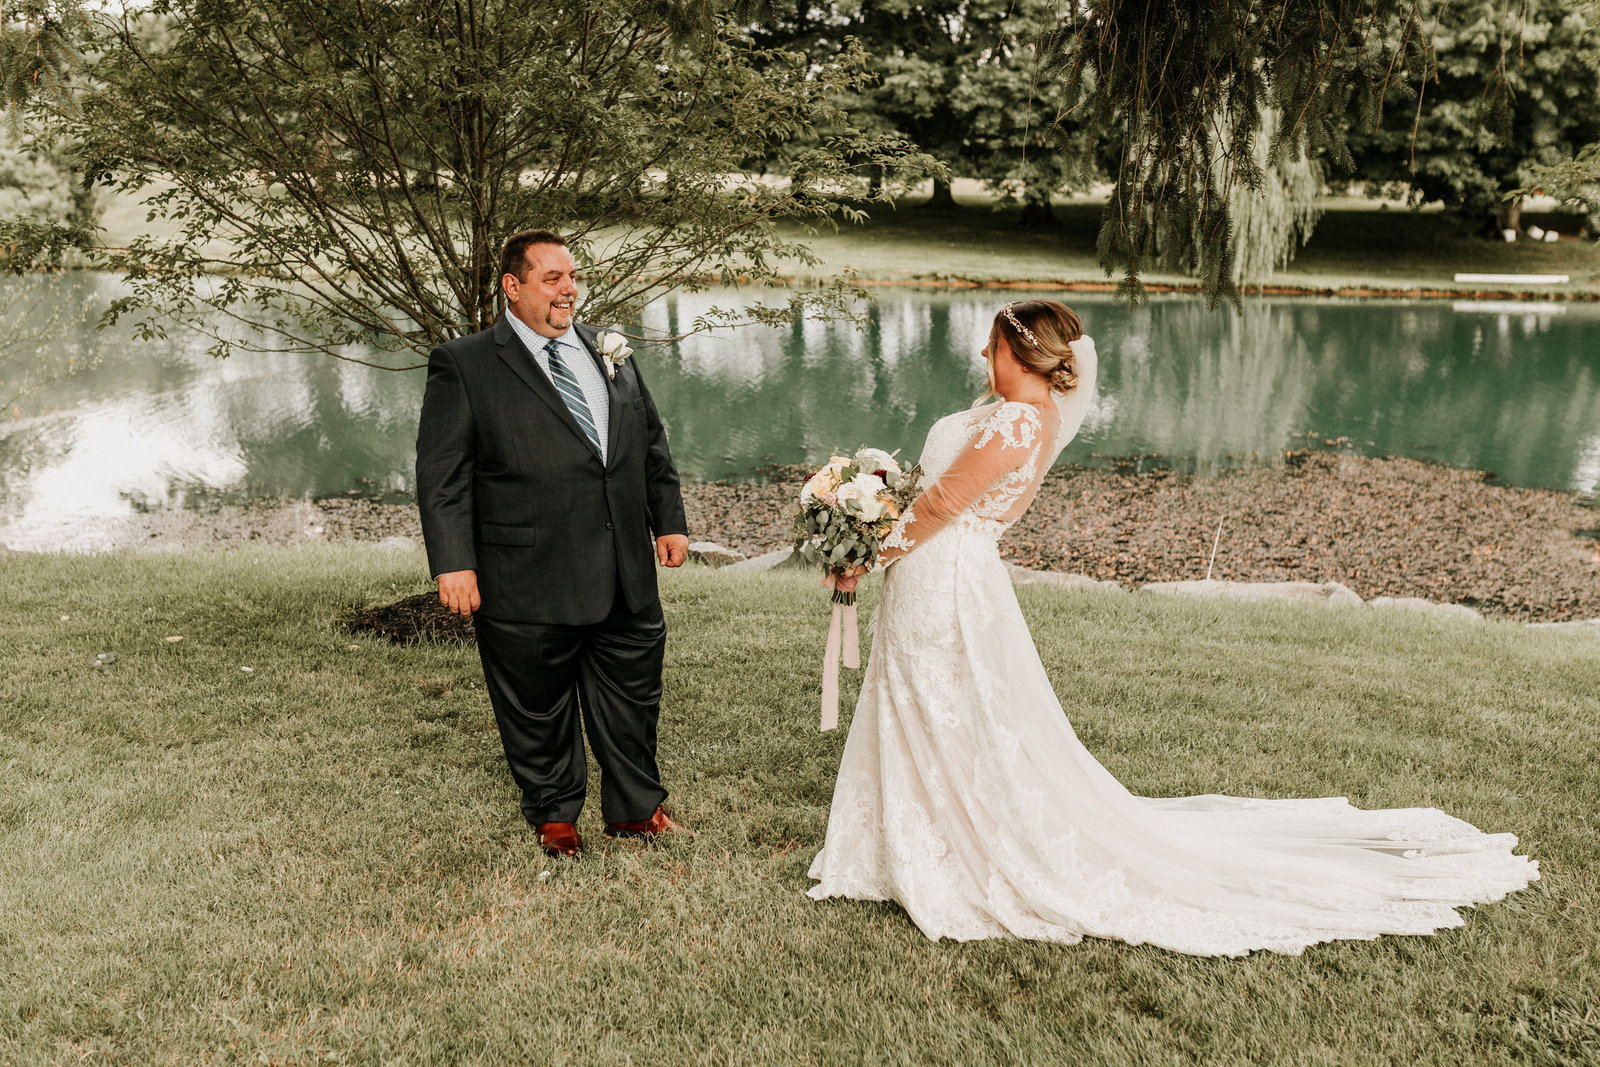 Daniella_Zackery_Wedding_8.4.18-49